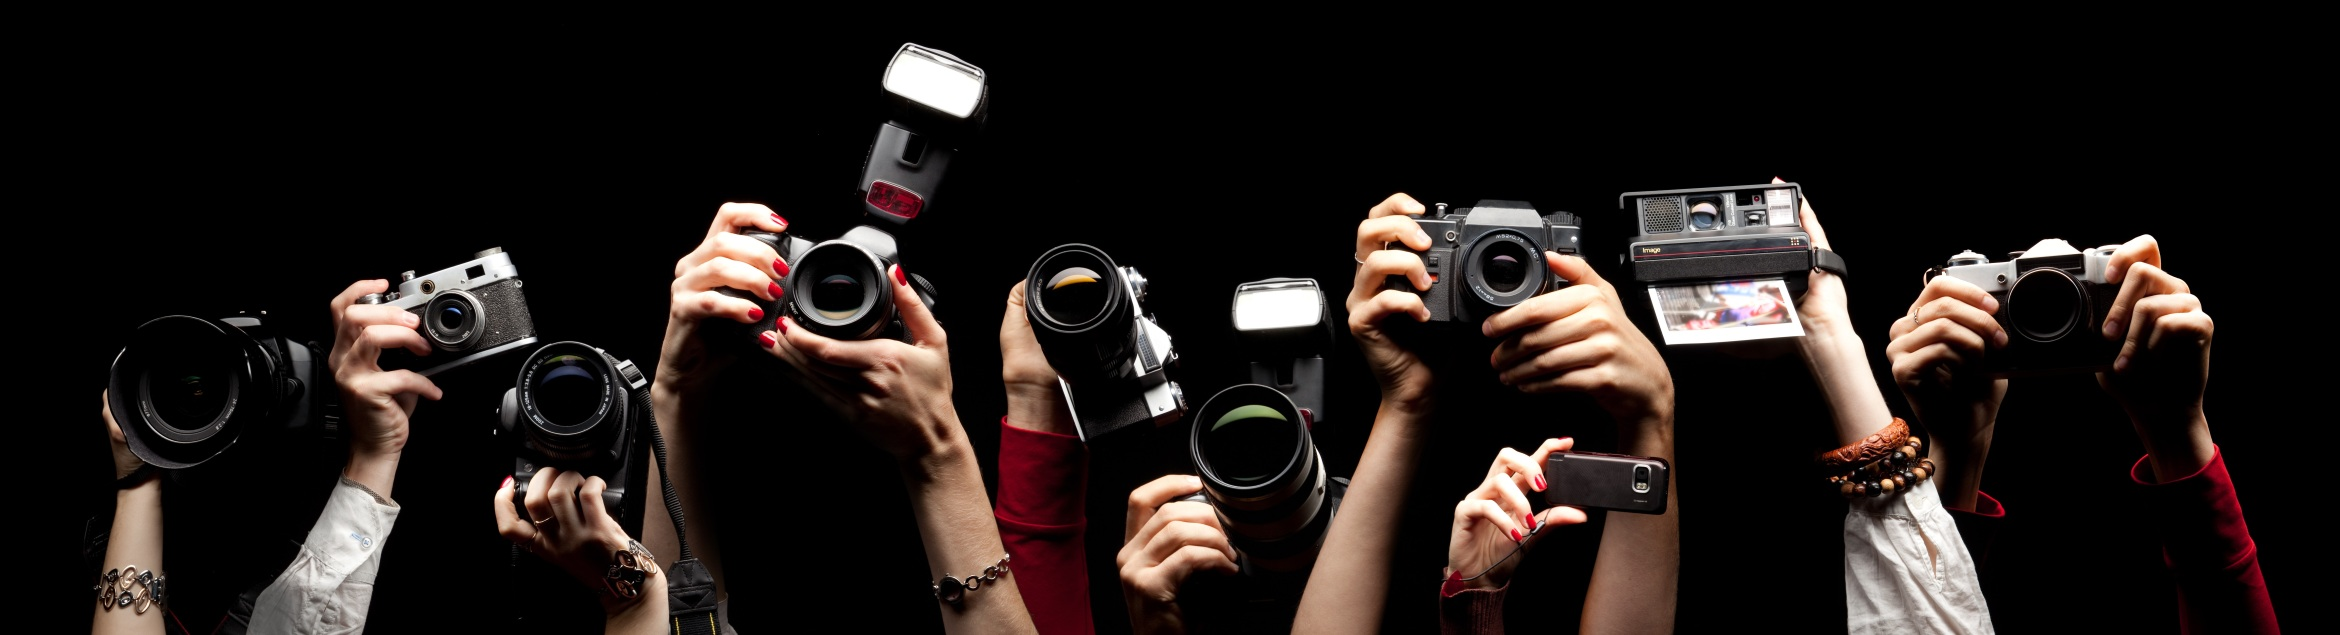 Raised hands holding different photocameras